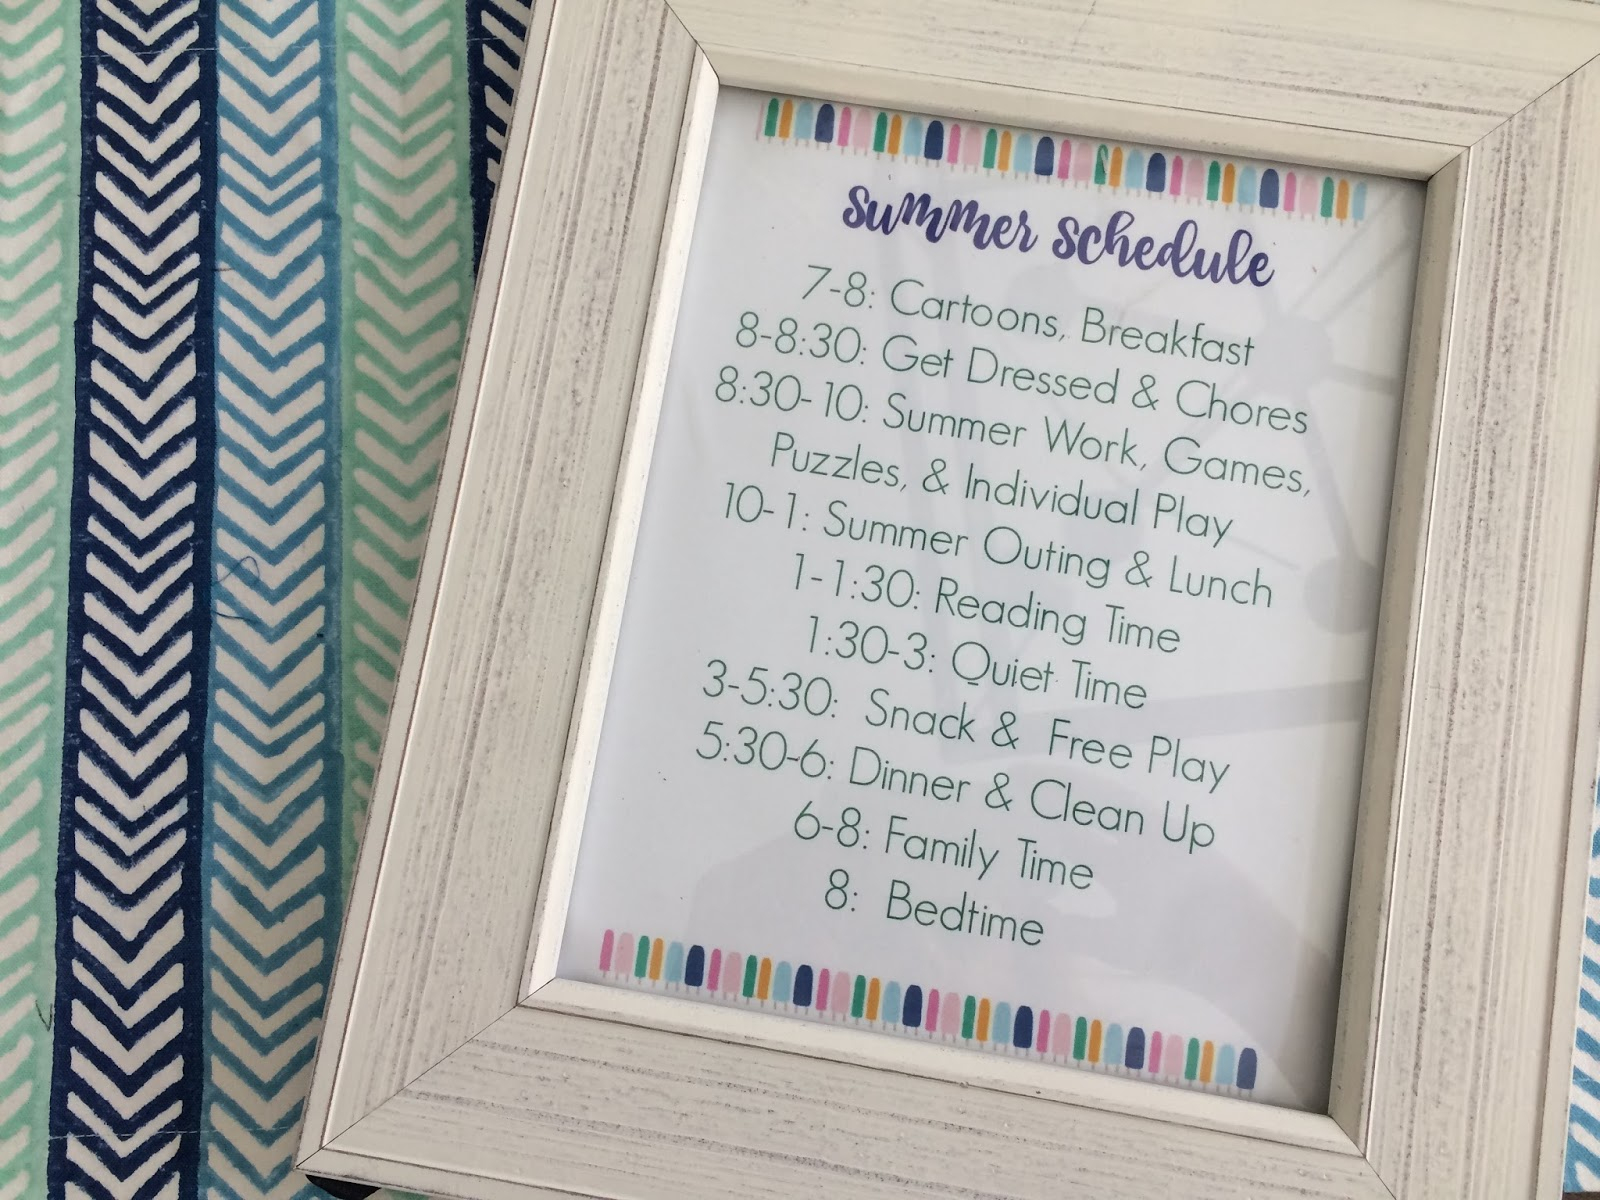 Summer Schedule For Kids (Free Printable) - The Chirping Moms - Free Printable Summer Games